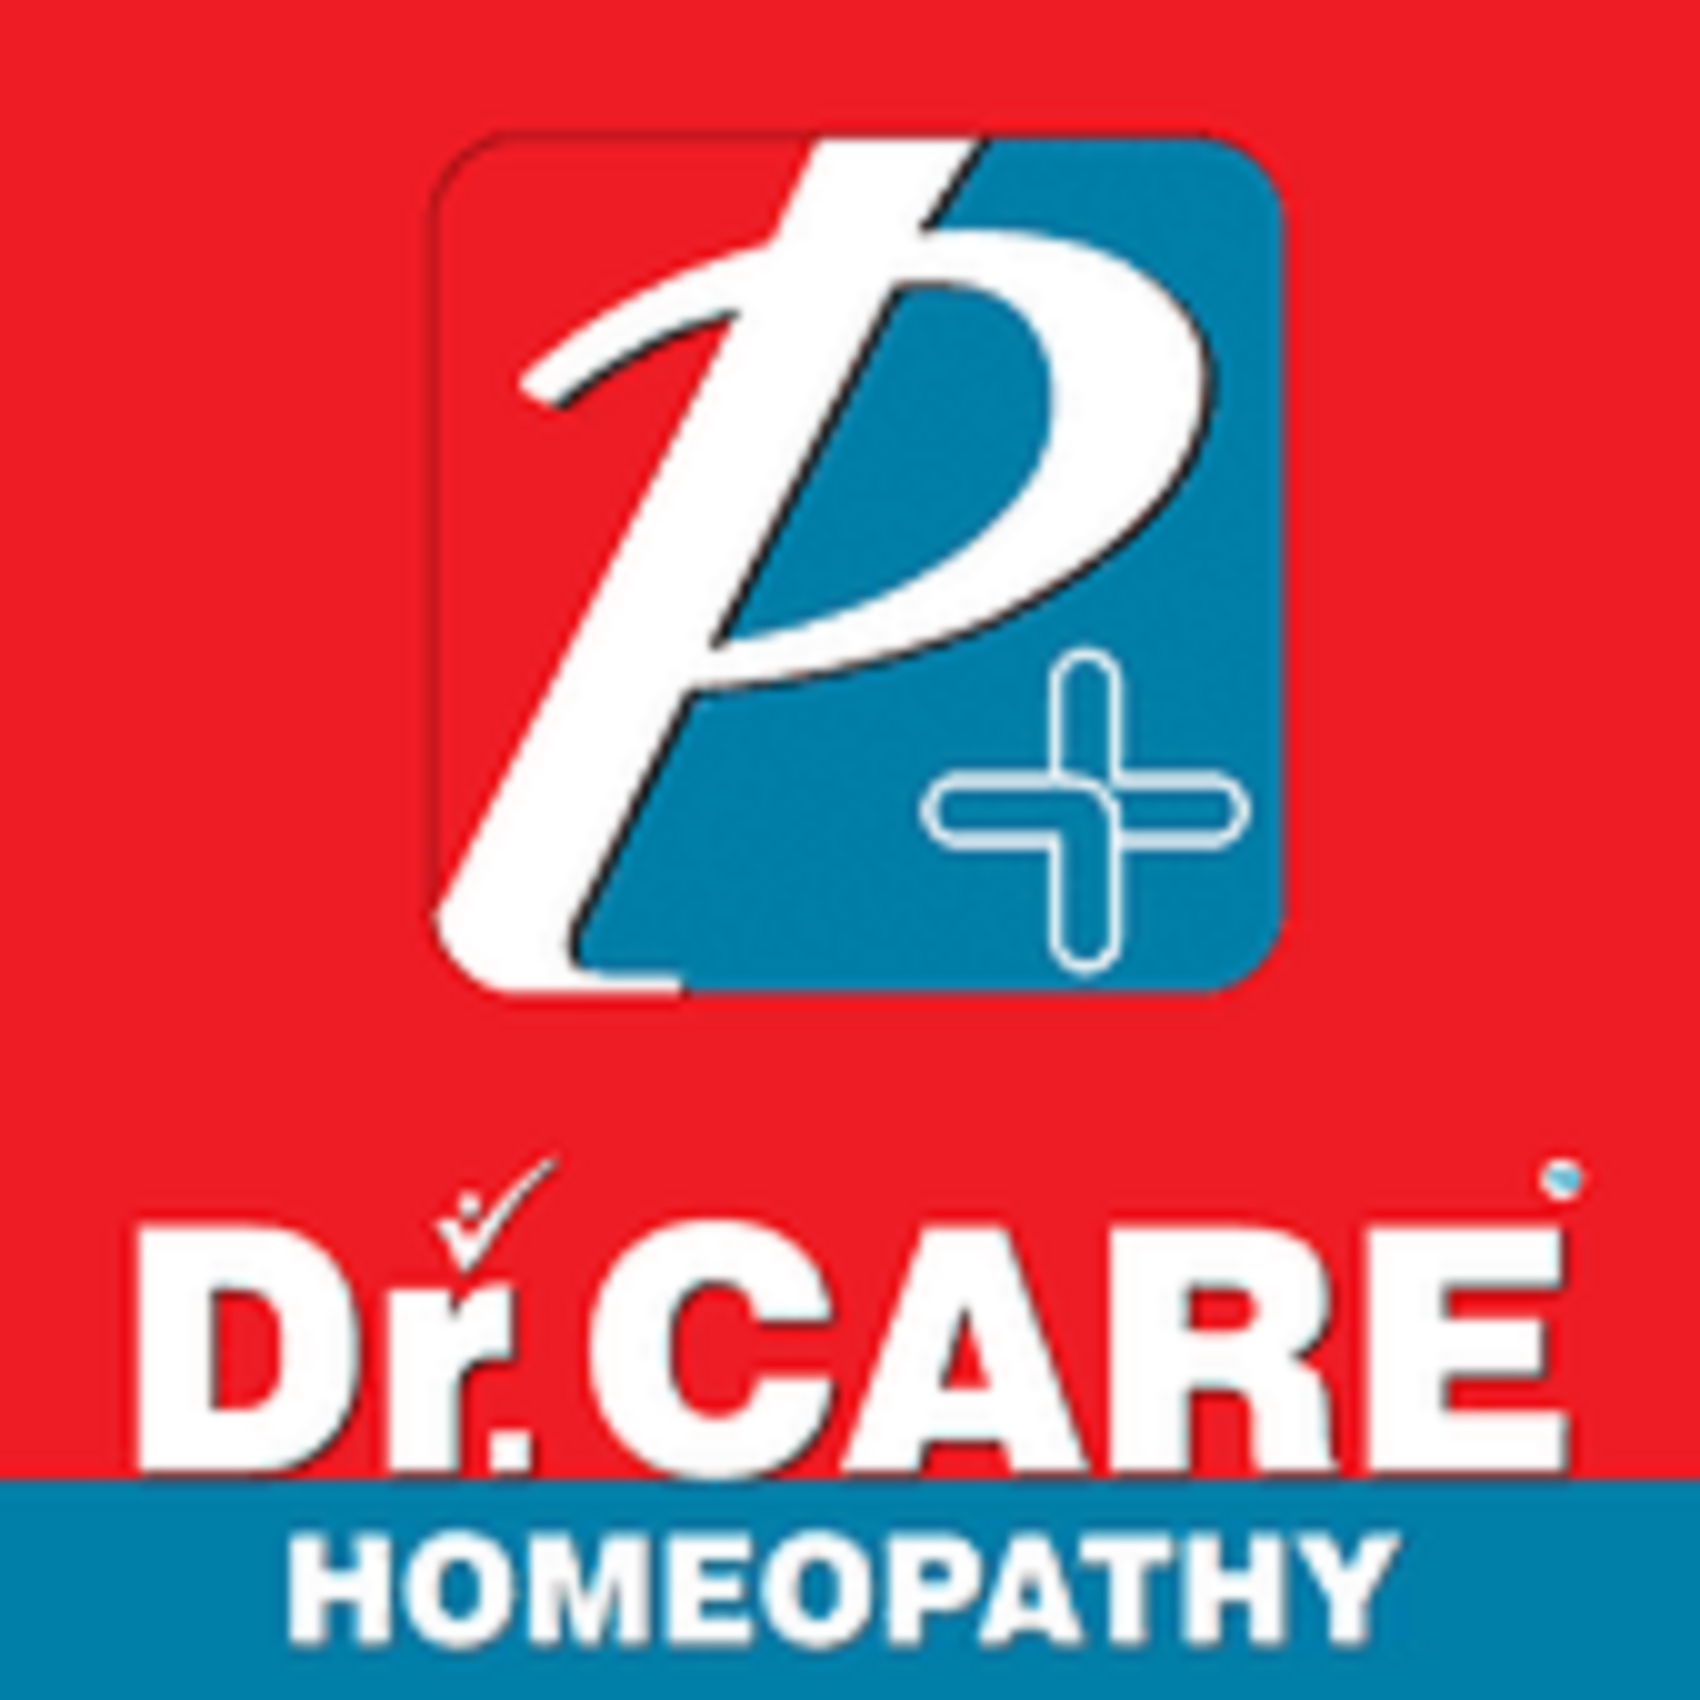 Dr.Care Homeopathy